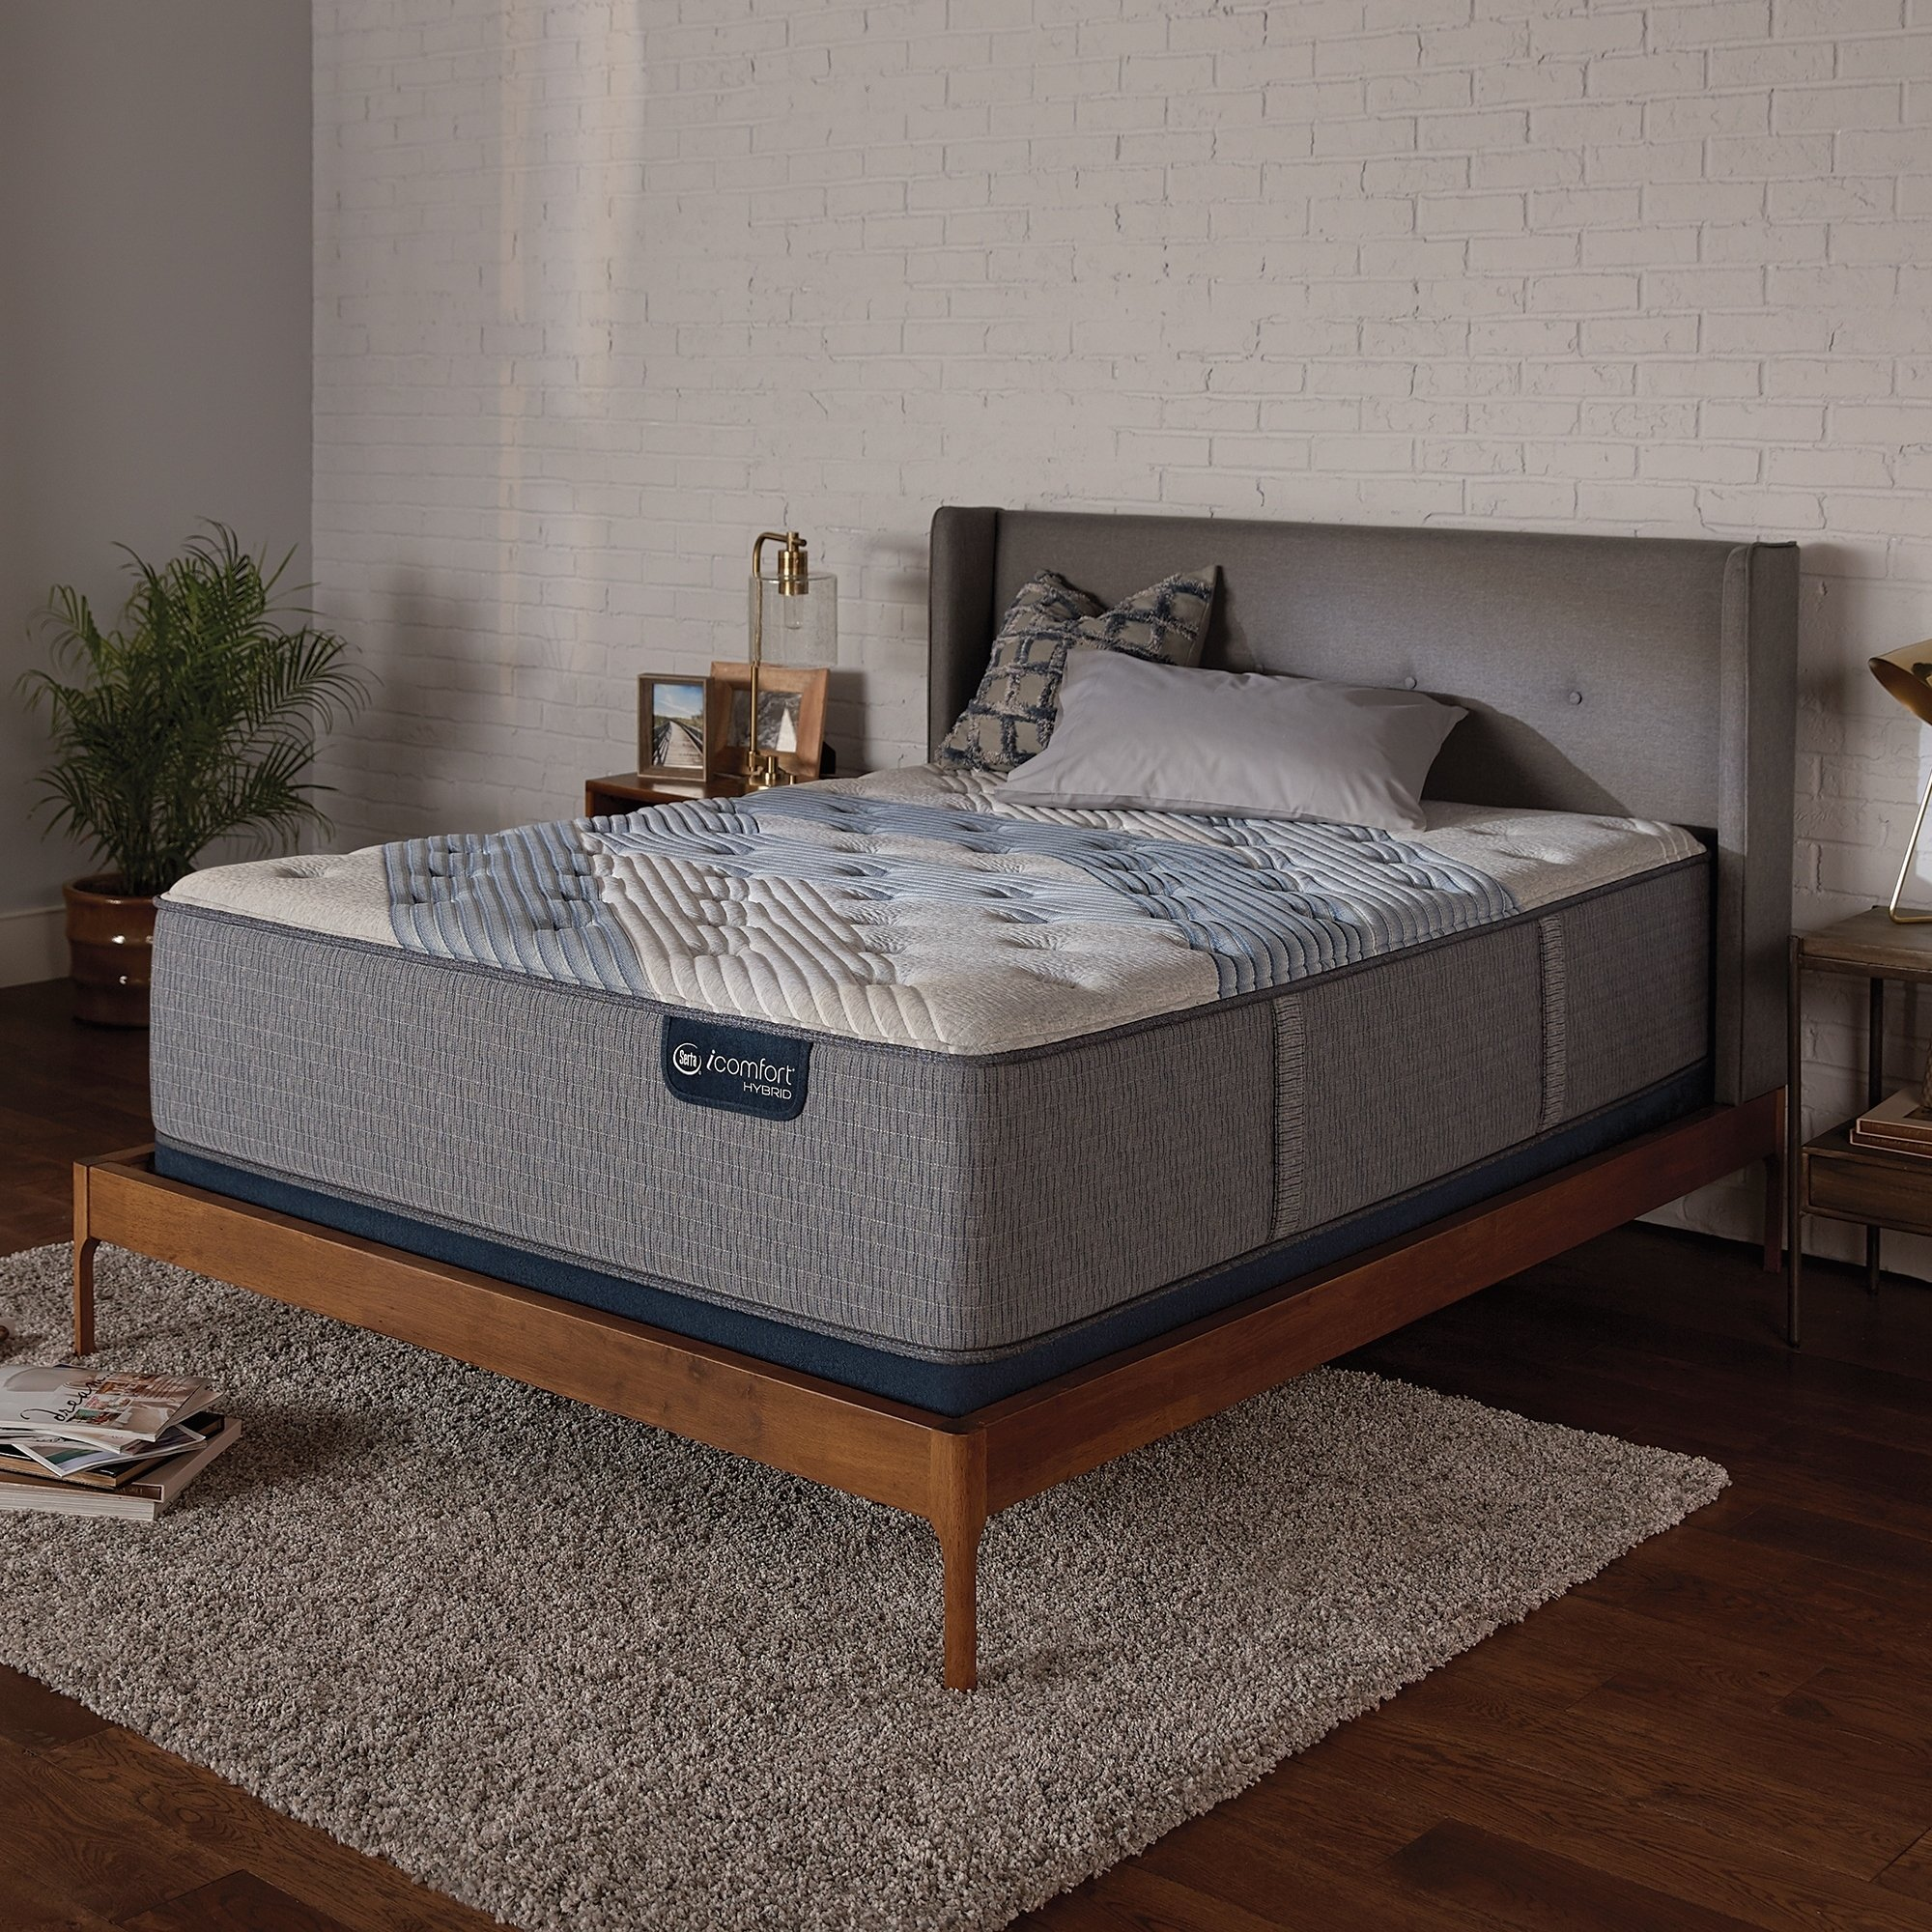 Serta Icomfort Hybrid Blue Fusion 1000 14 Inch Luxury Firm King